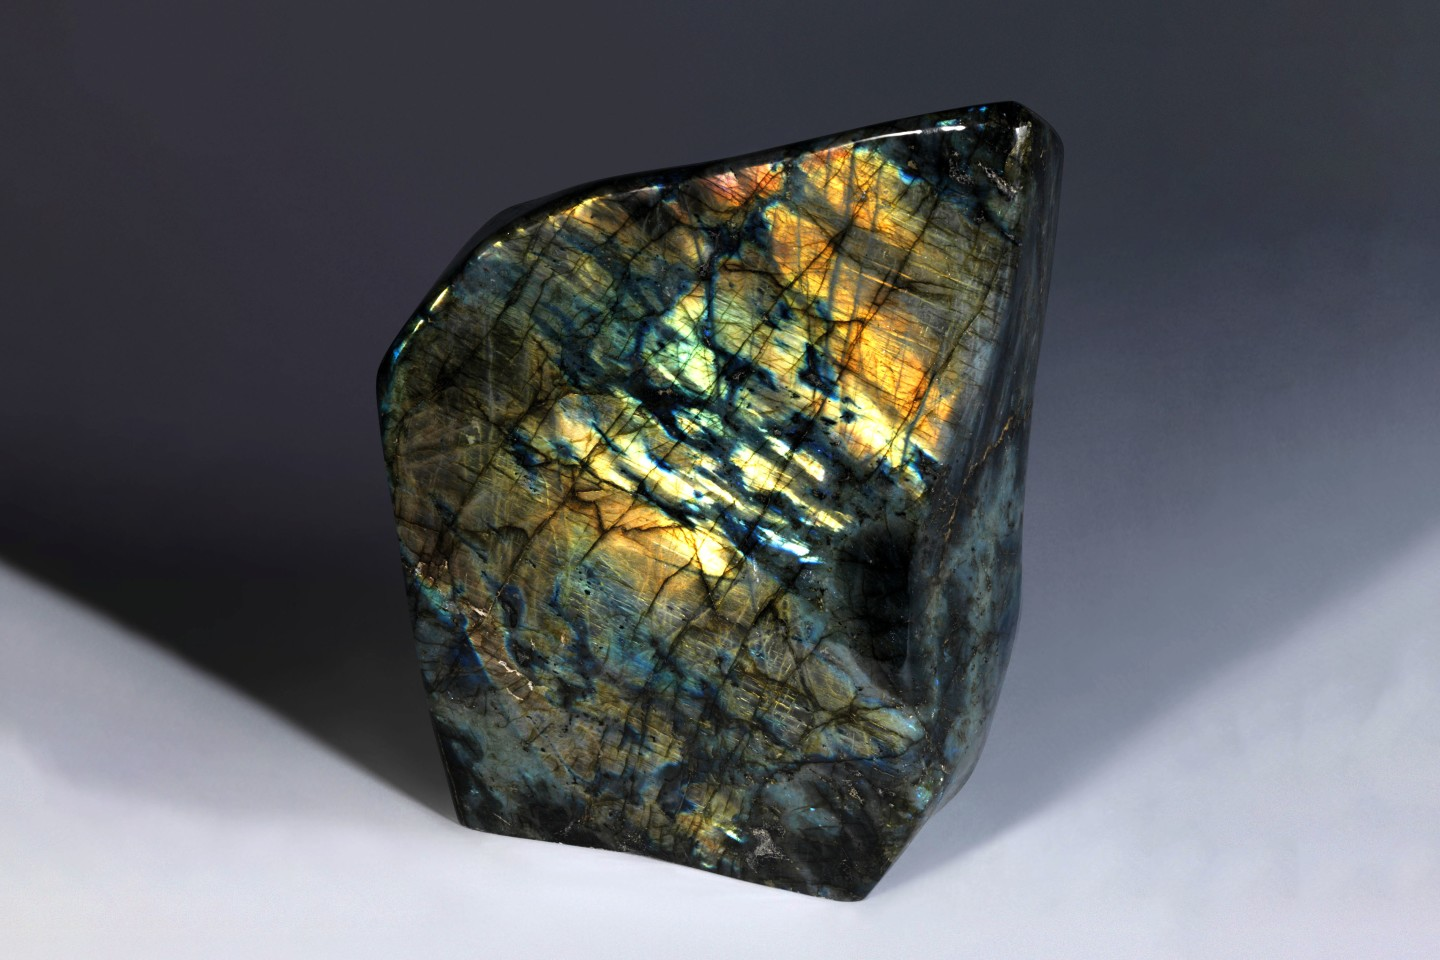 This free-form specimen of Labradorite is polished on all sides and measures 13 x 9 x 4 inches (33 x 23 x 10cm)